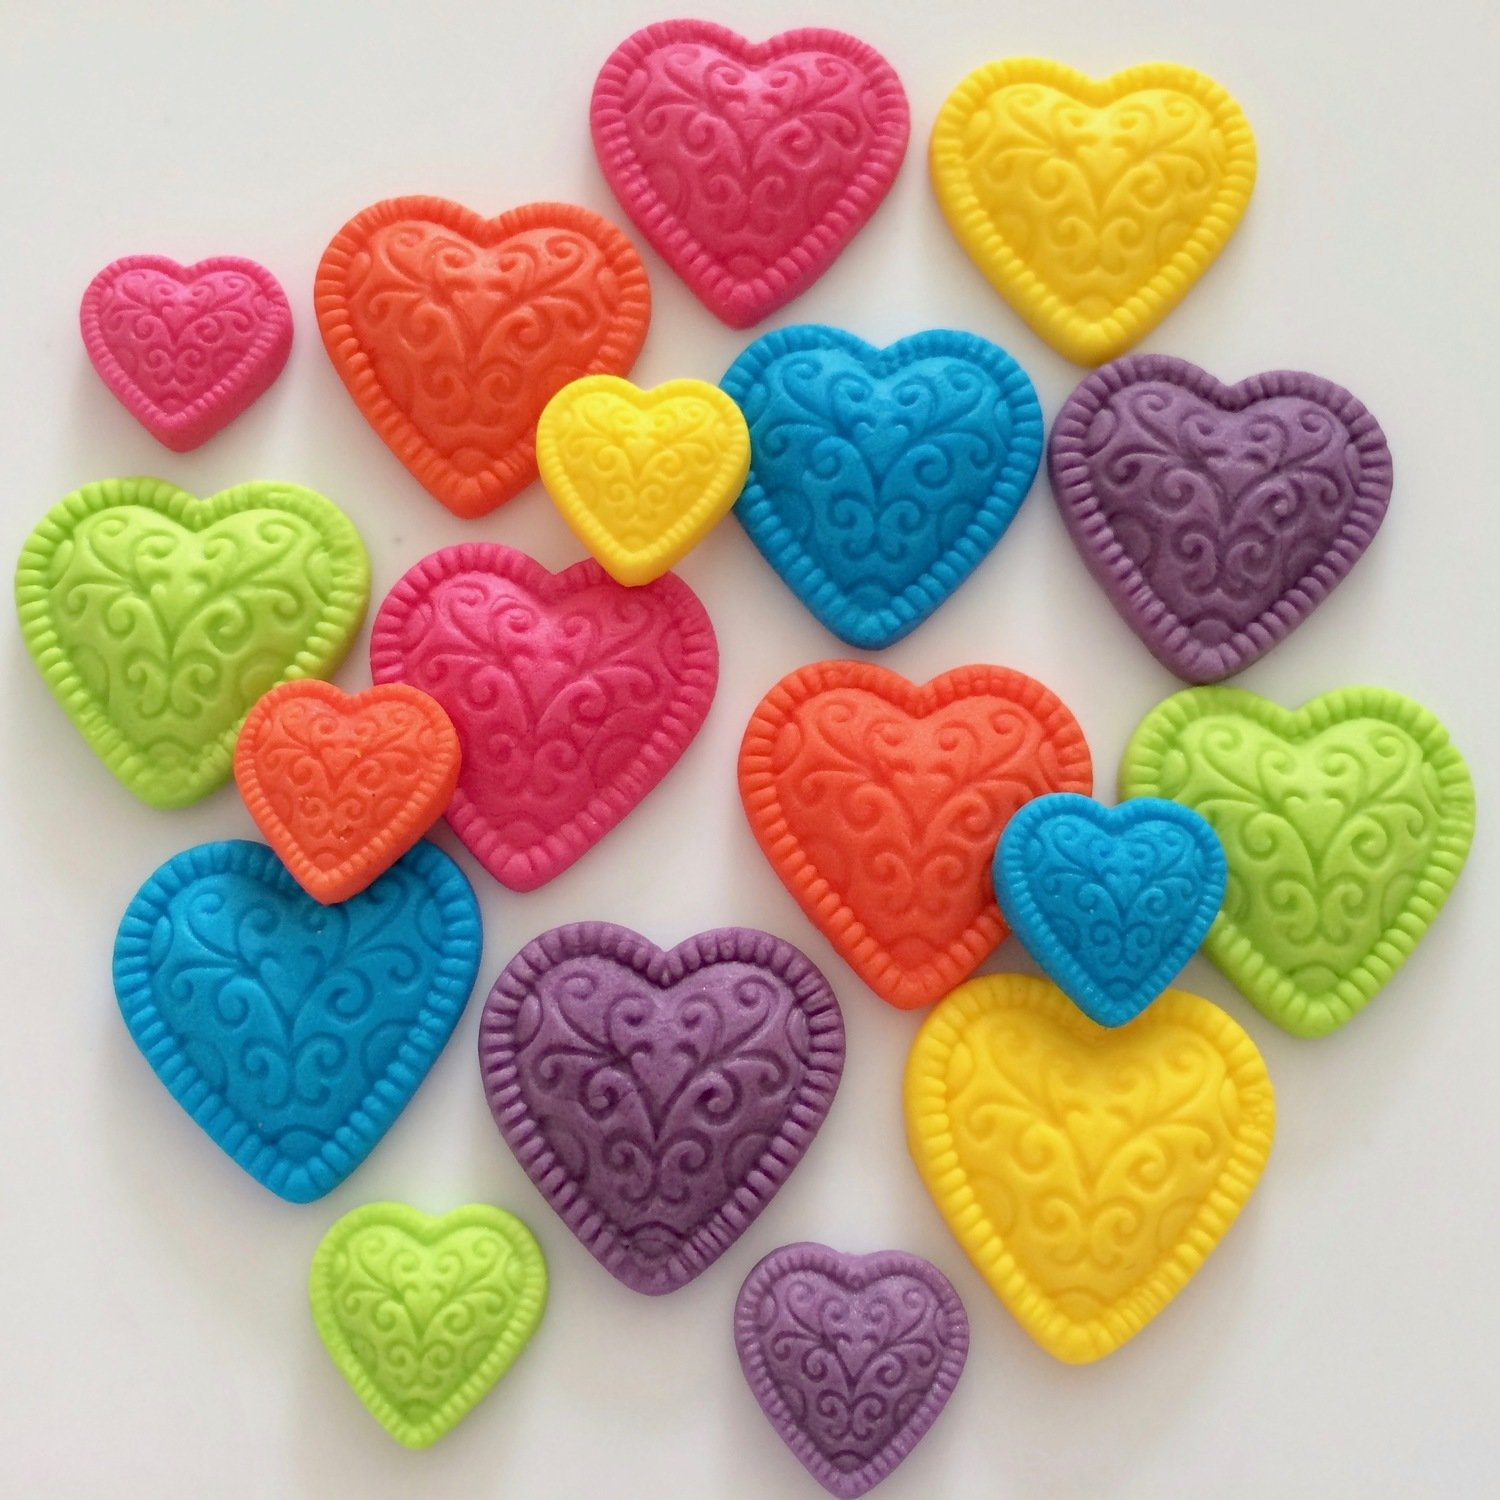 Rainbow Sugar Hearts